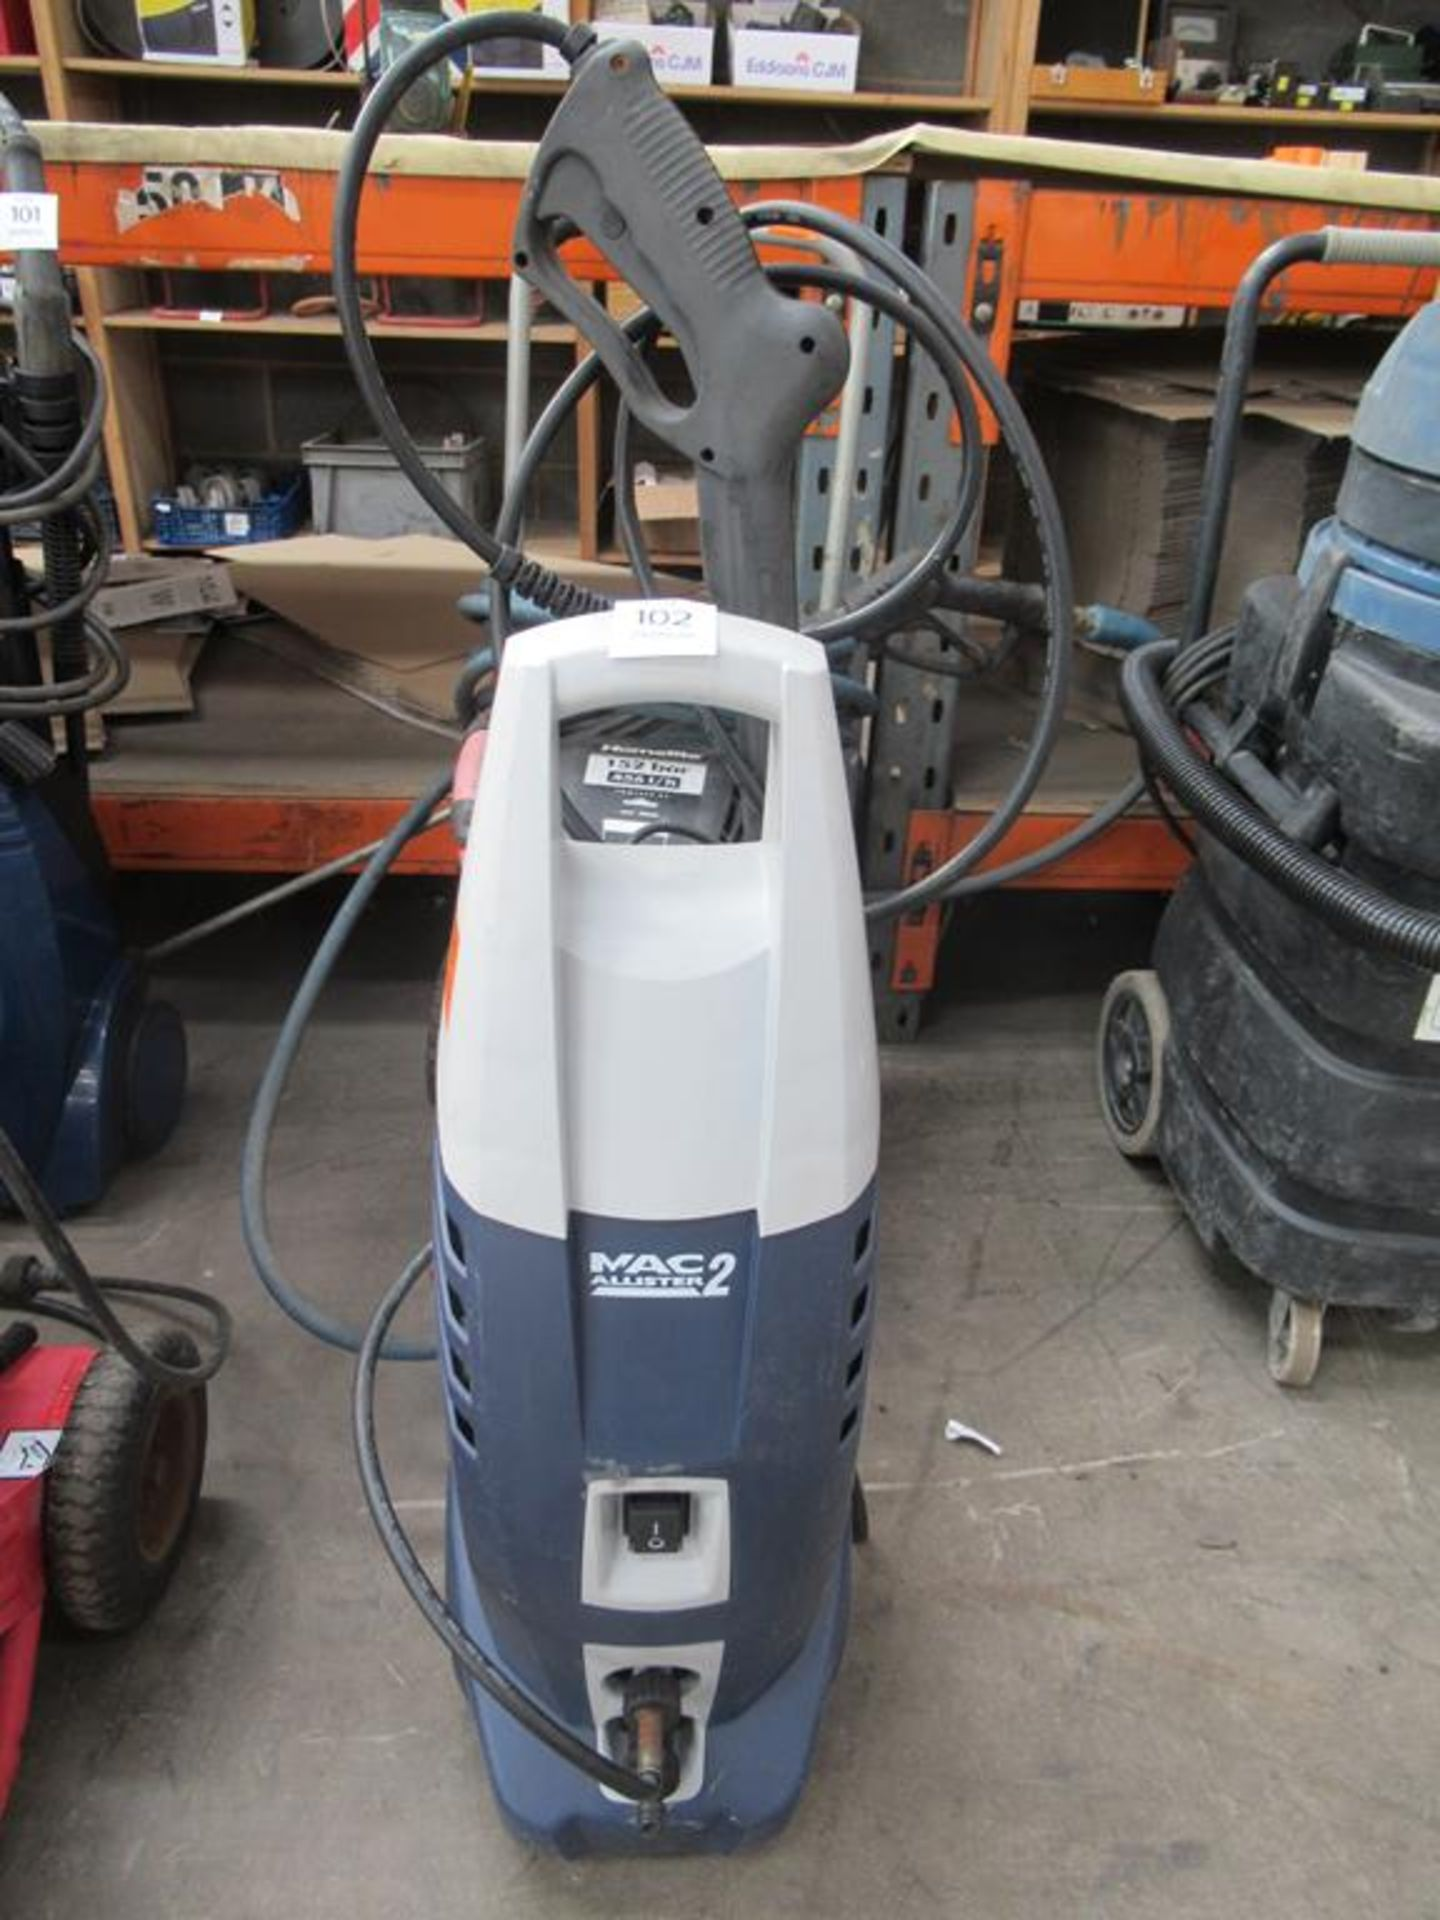 MacAllister electric pressure washers